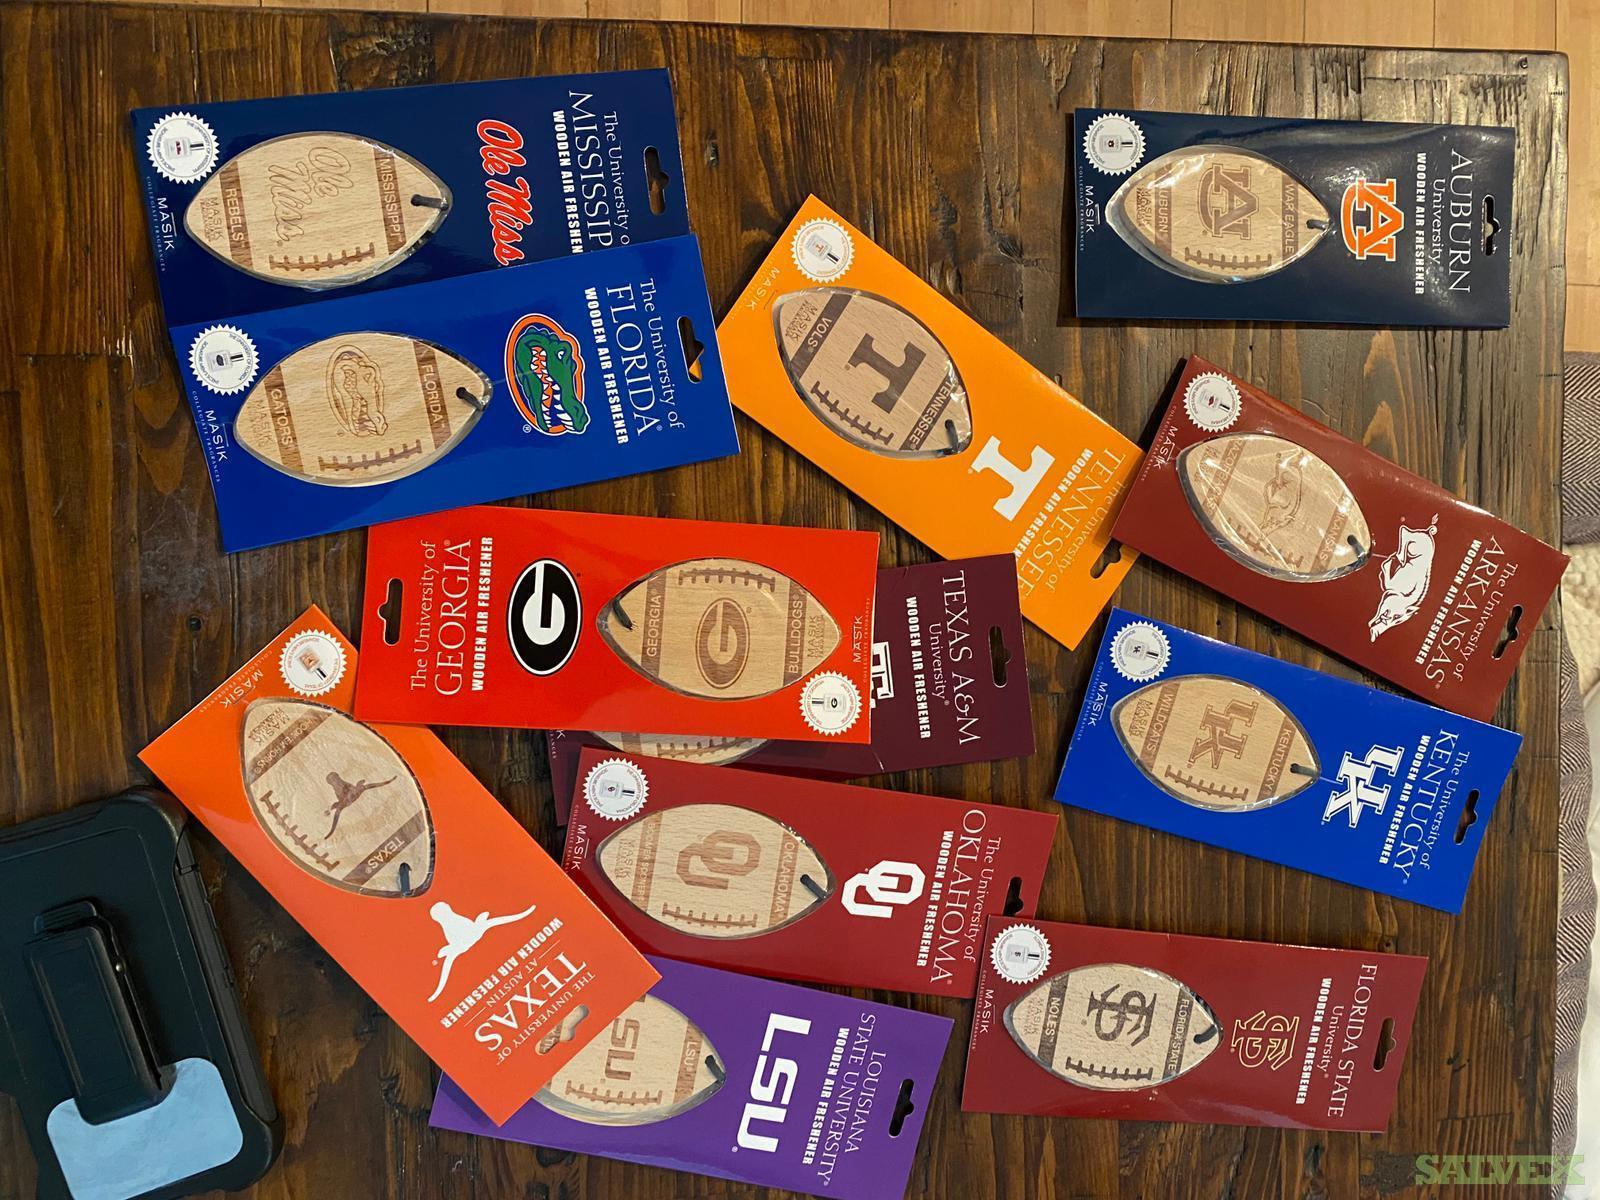 Masik College Wooden Football Air Freshener (Estimated 12,000 Pieces) In NYC